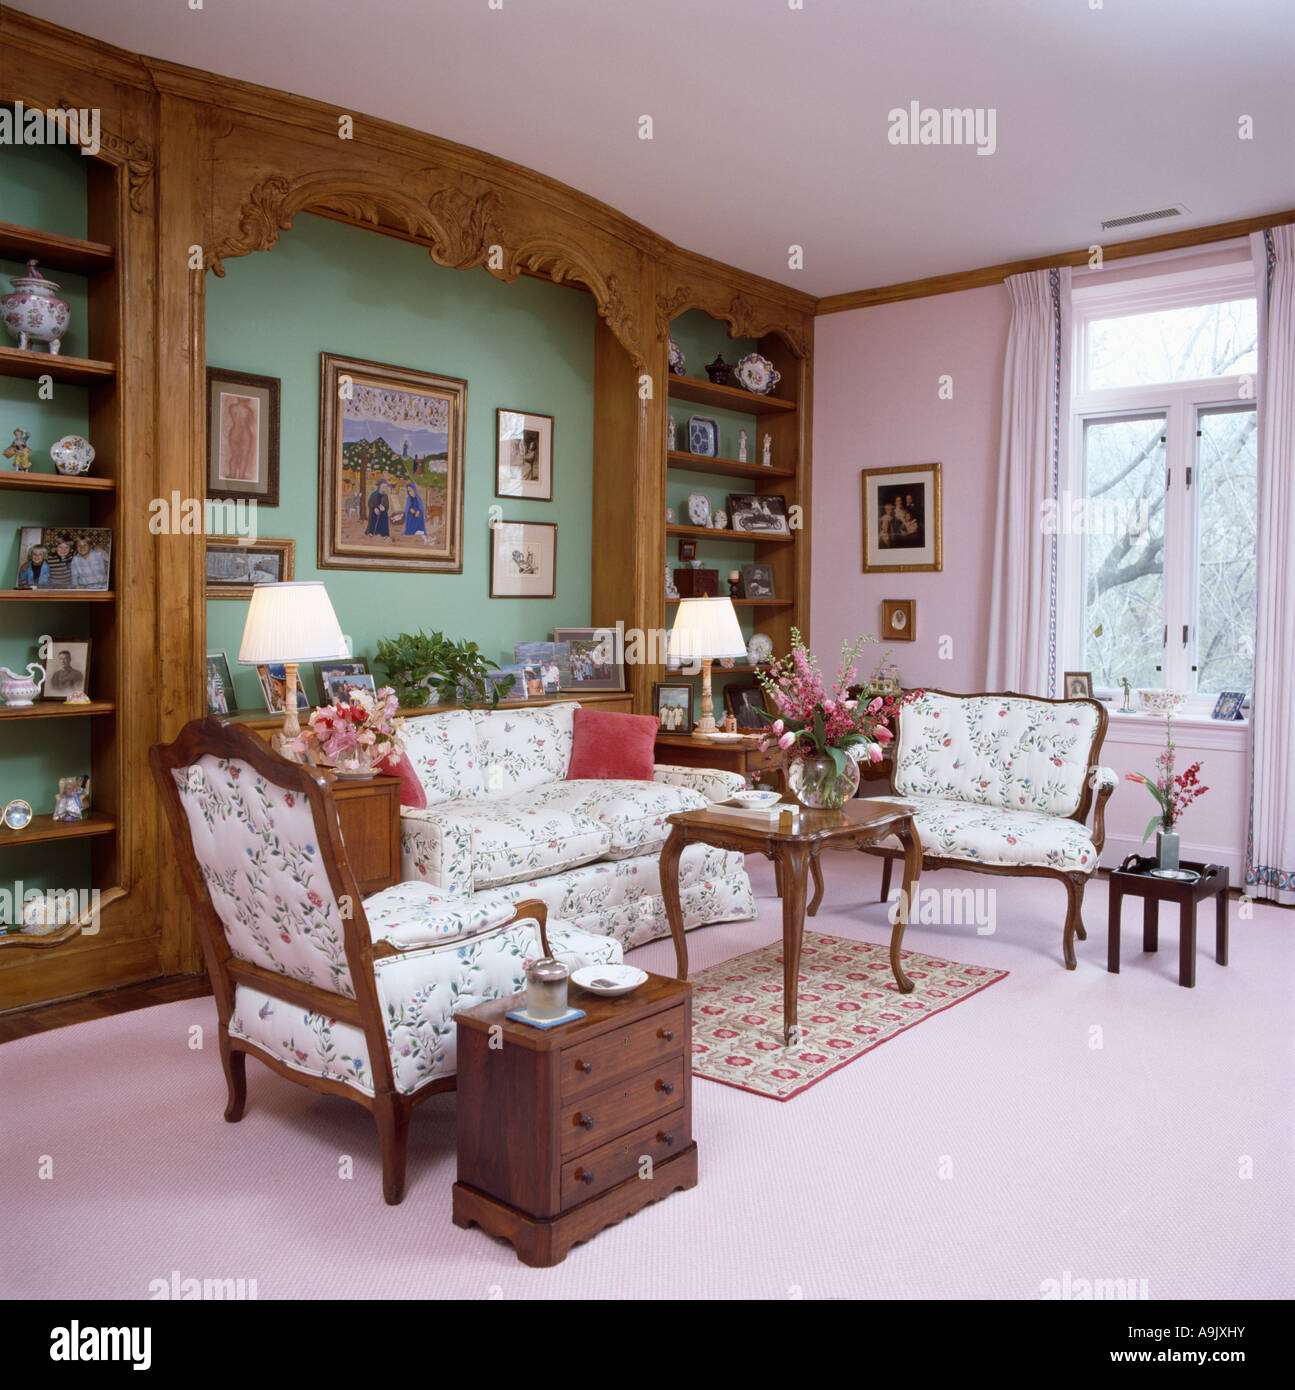 Carved Wood Over Green Alcove With Sofa In Pastel Pink Livingroom With Pink  Carpet